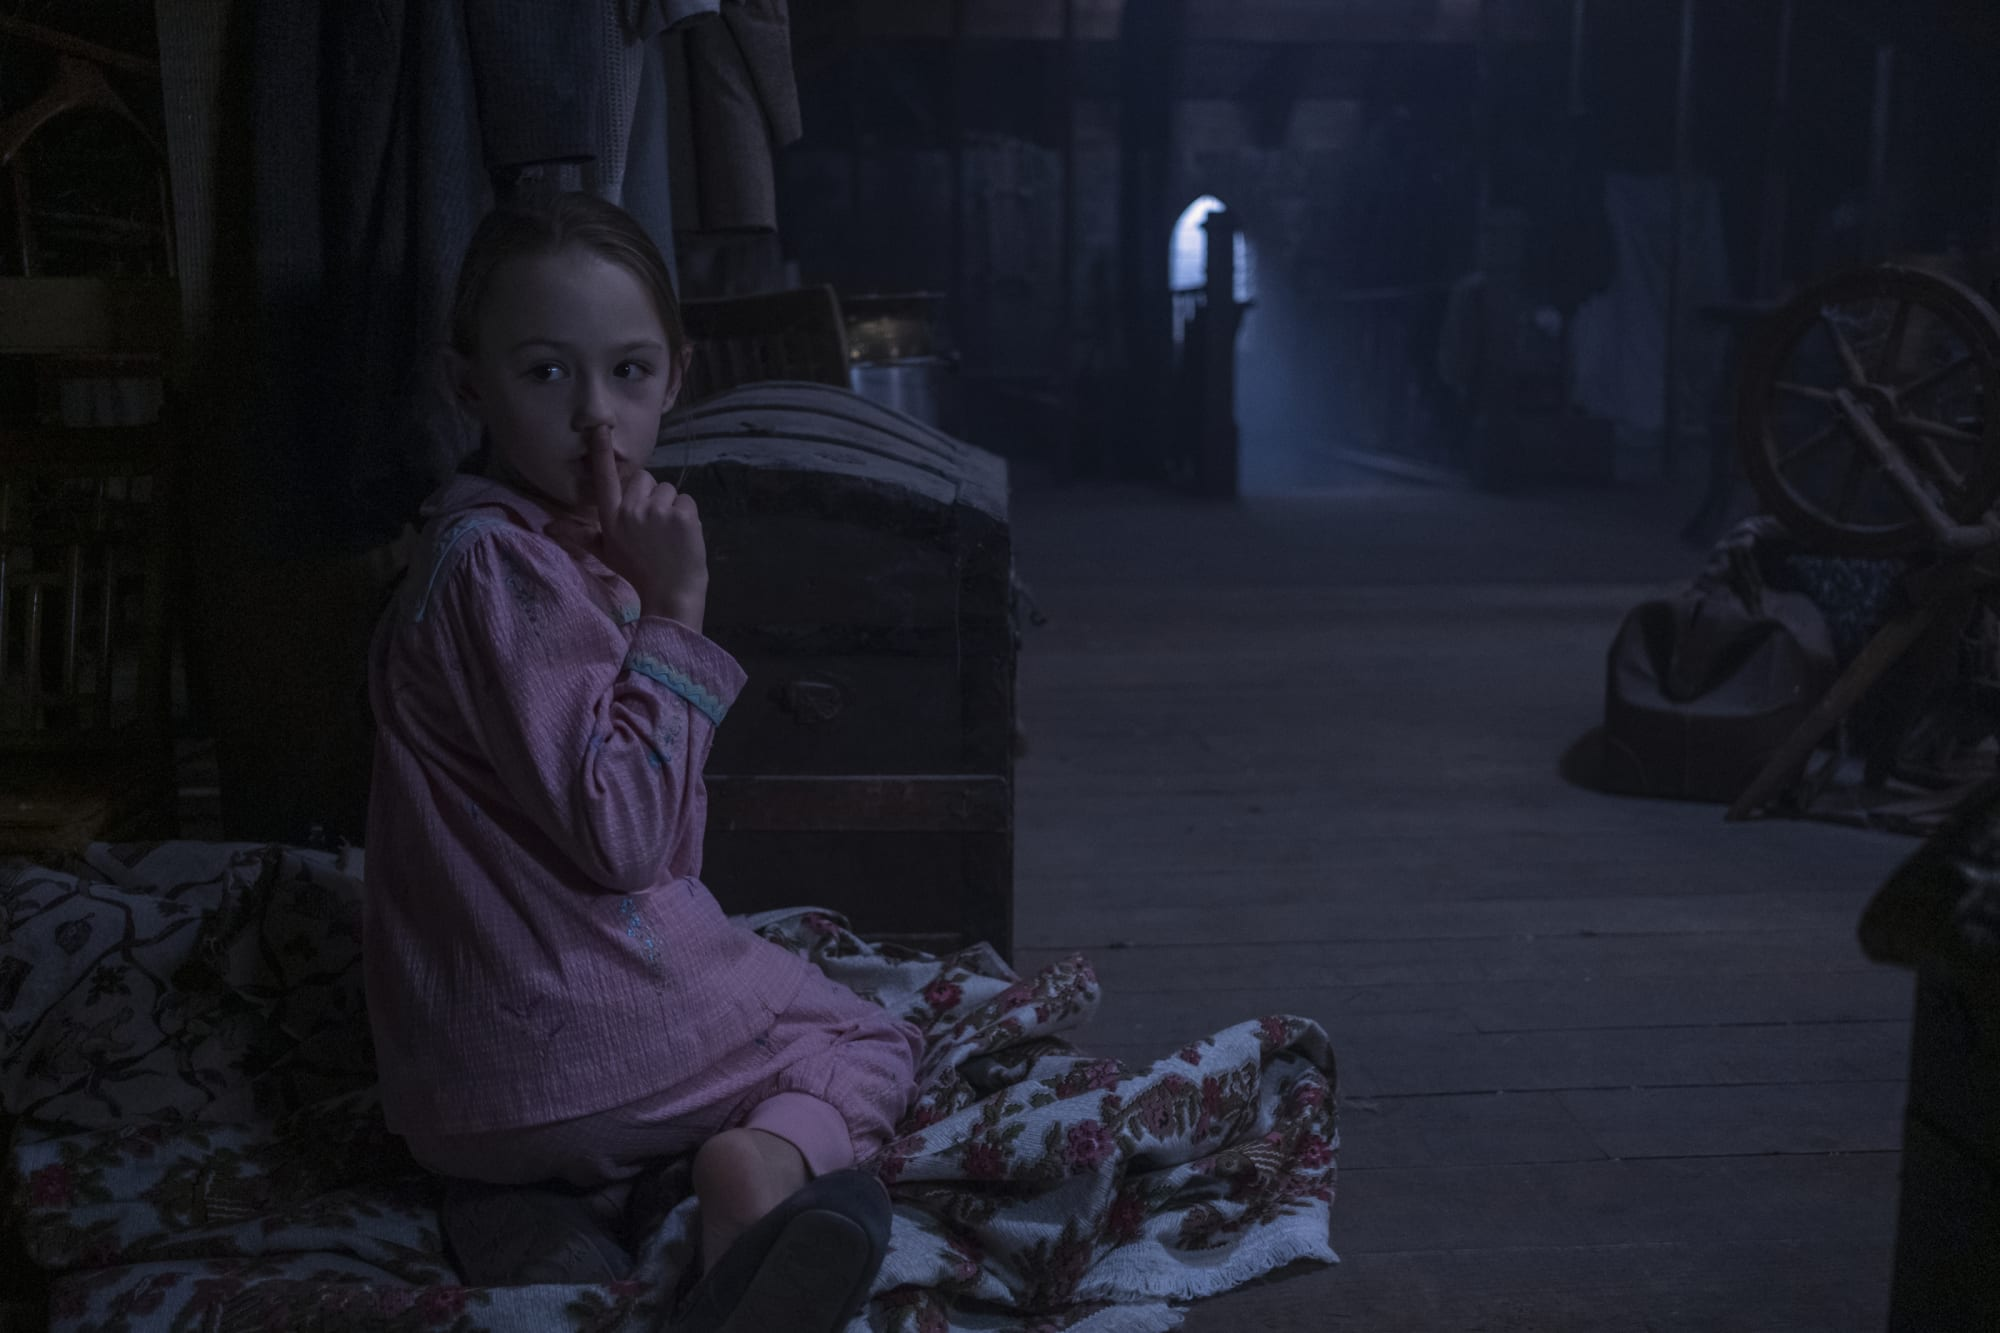 Netflix: The Haunting of Bly Manor trailer chills to the bone